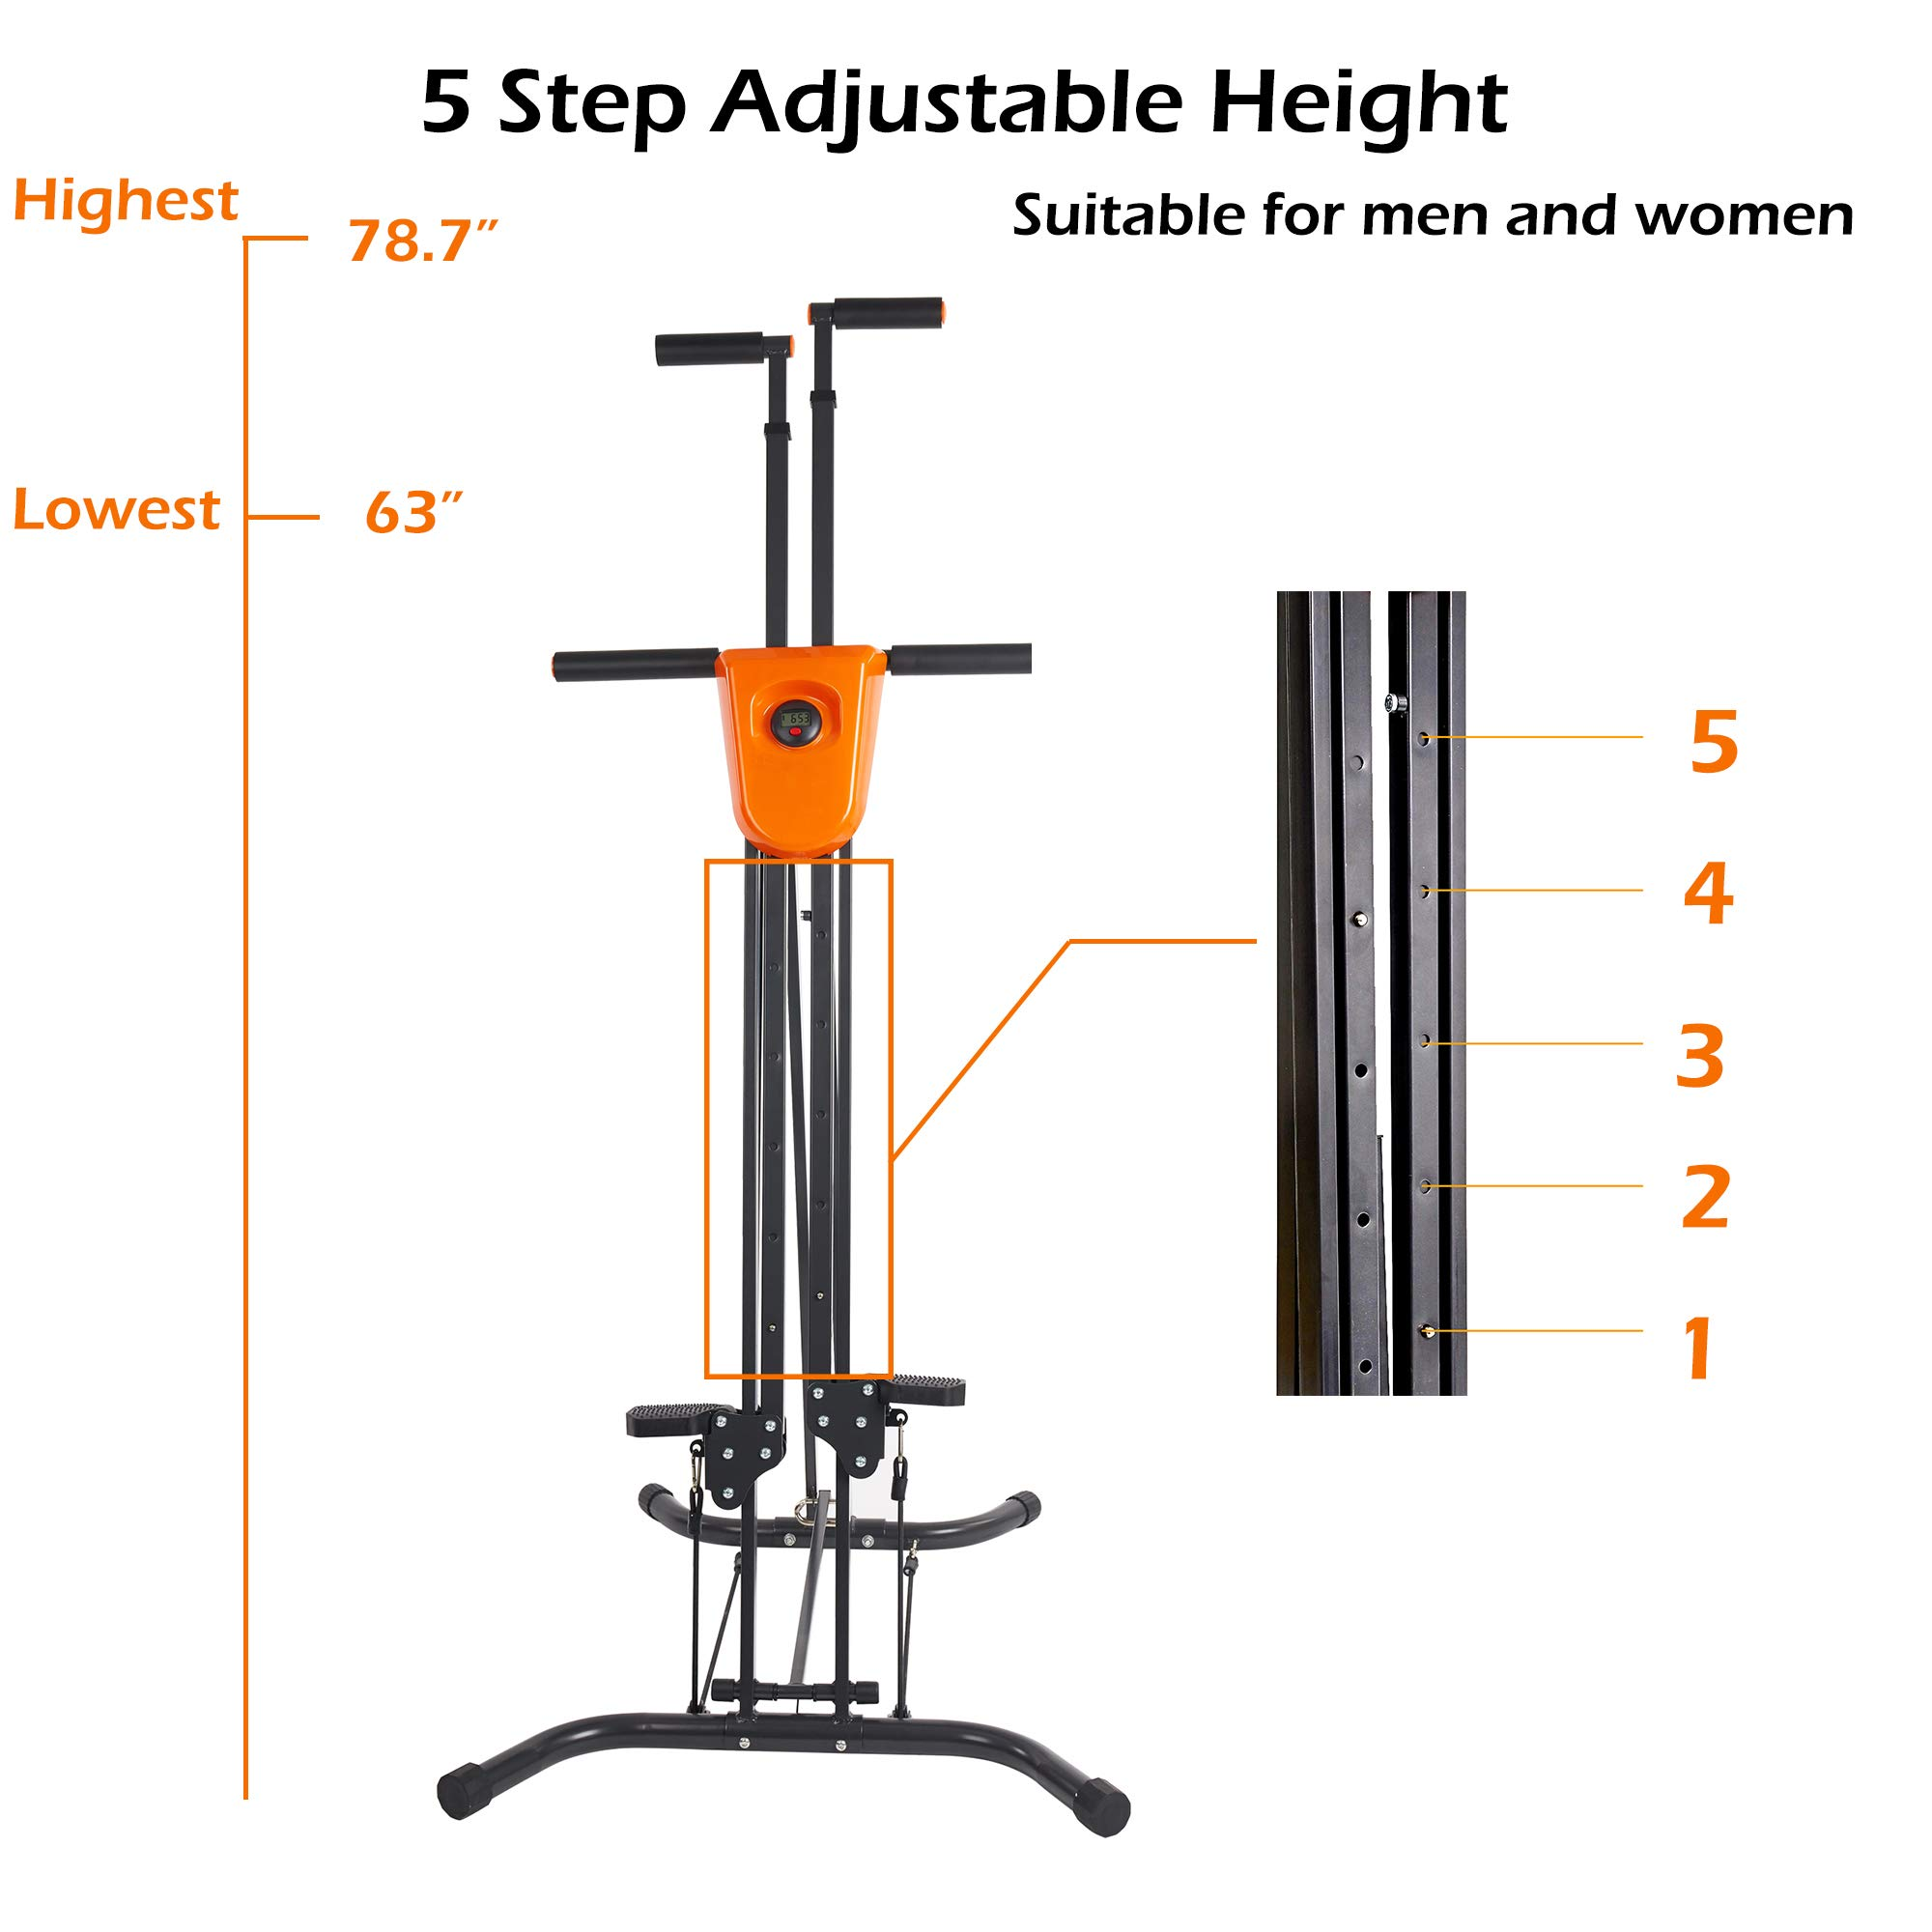 Lucky Tree Stair Climber Exercise Machine Vertical Climber Stairs Gym Home Fitness Folding Stair Stepper Adjustable Height for Women Man Full Total Body Workout by Lucky Tree (Image #3)